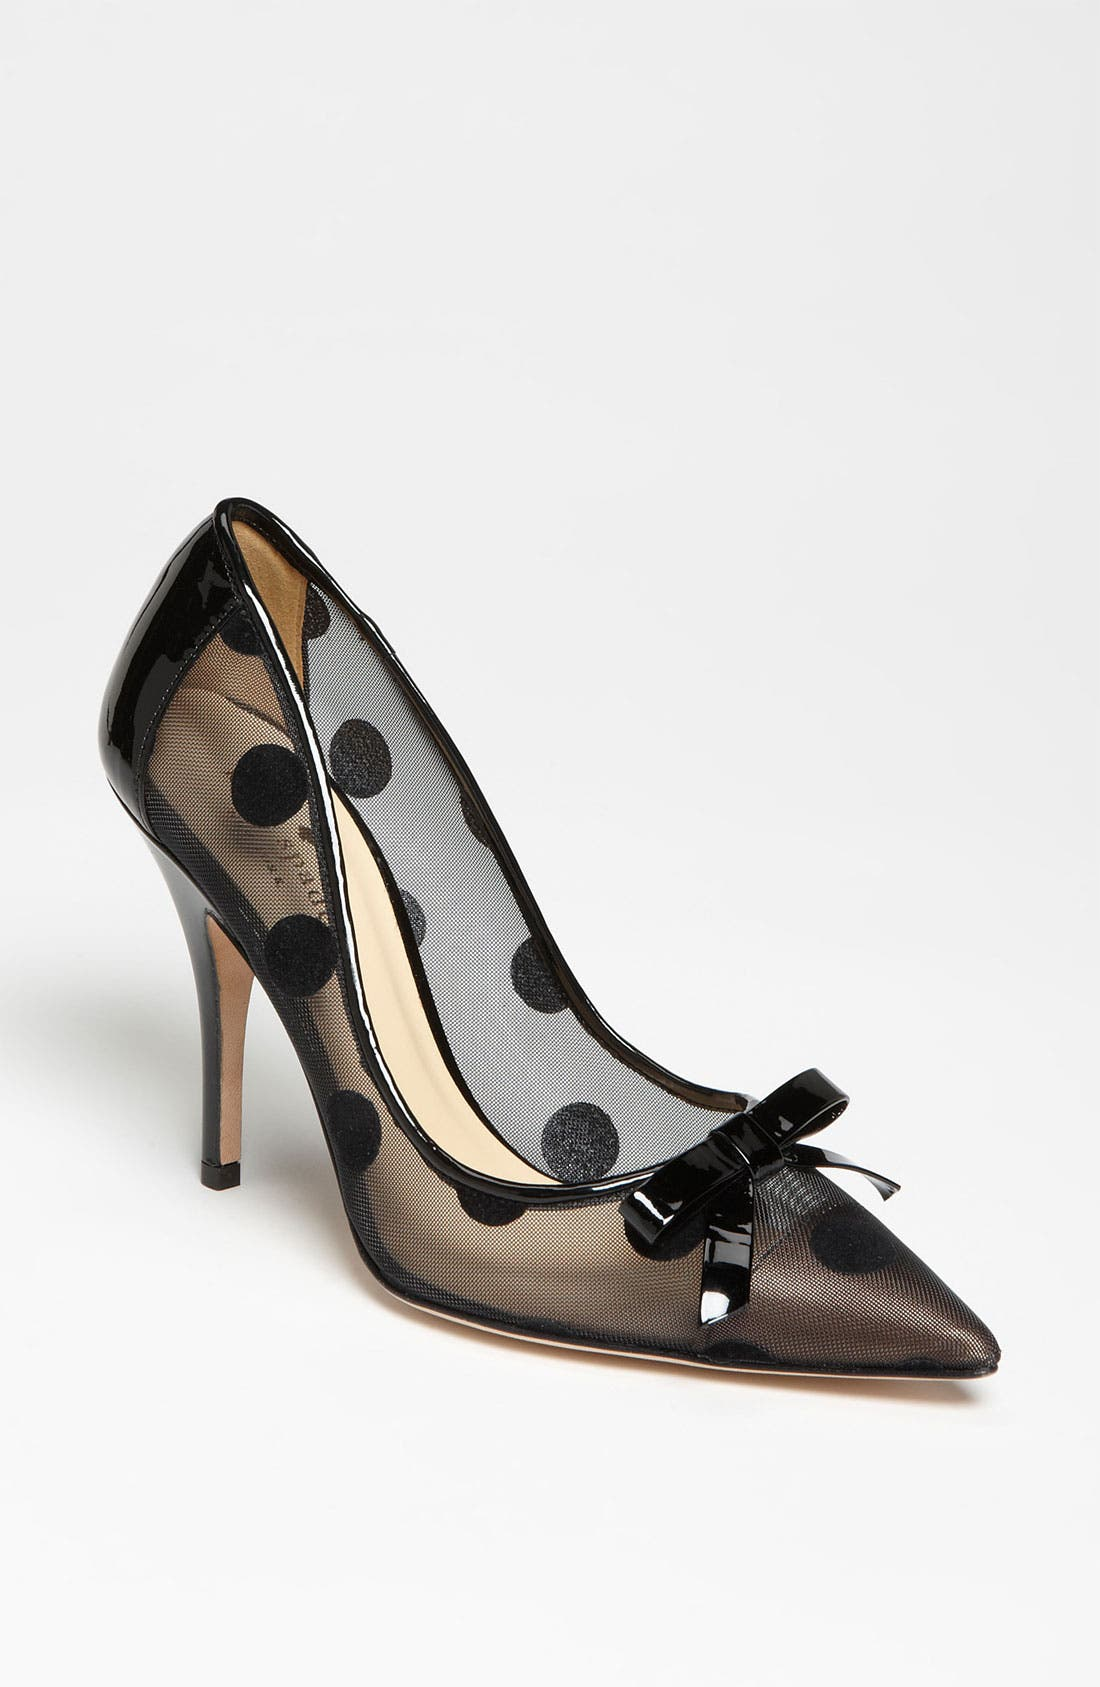 KATE SPADE NEW YORK, 'lisa' pump, Main thumbnail 1, color, 001